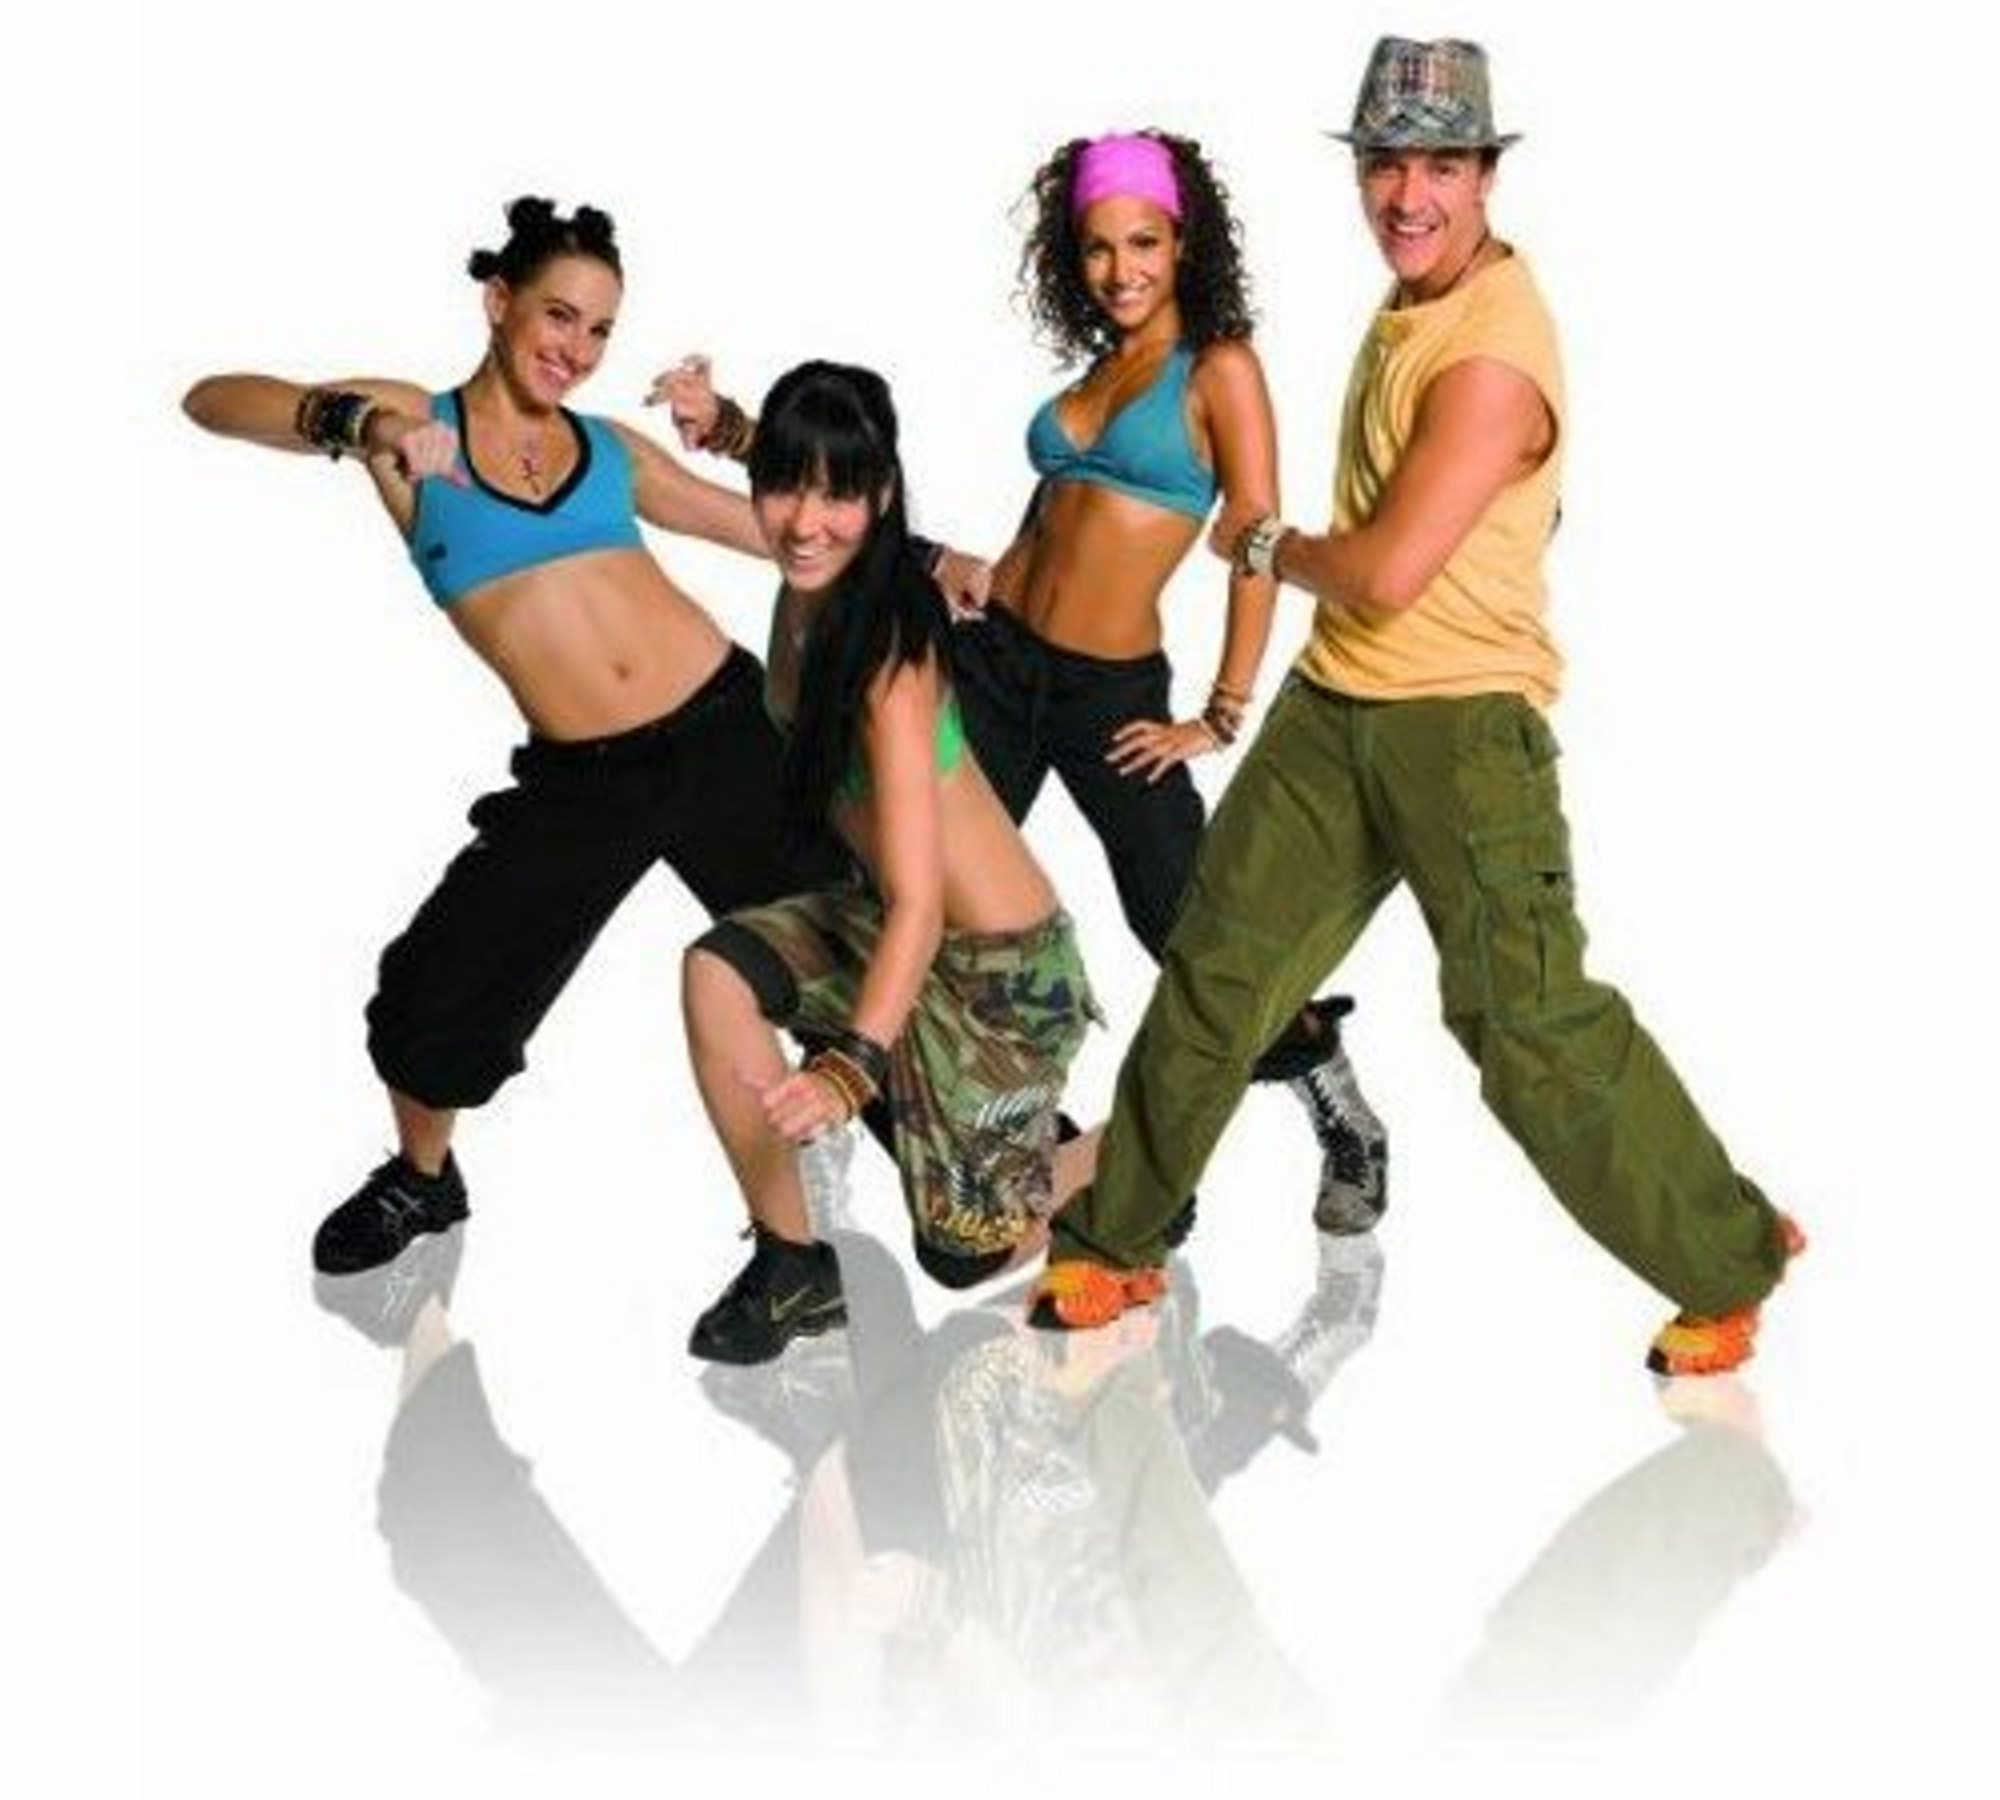 Zumba Dance Png Free Zumba Dance Png Transparent Images 94169 Pngio